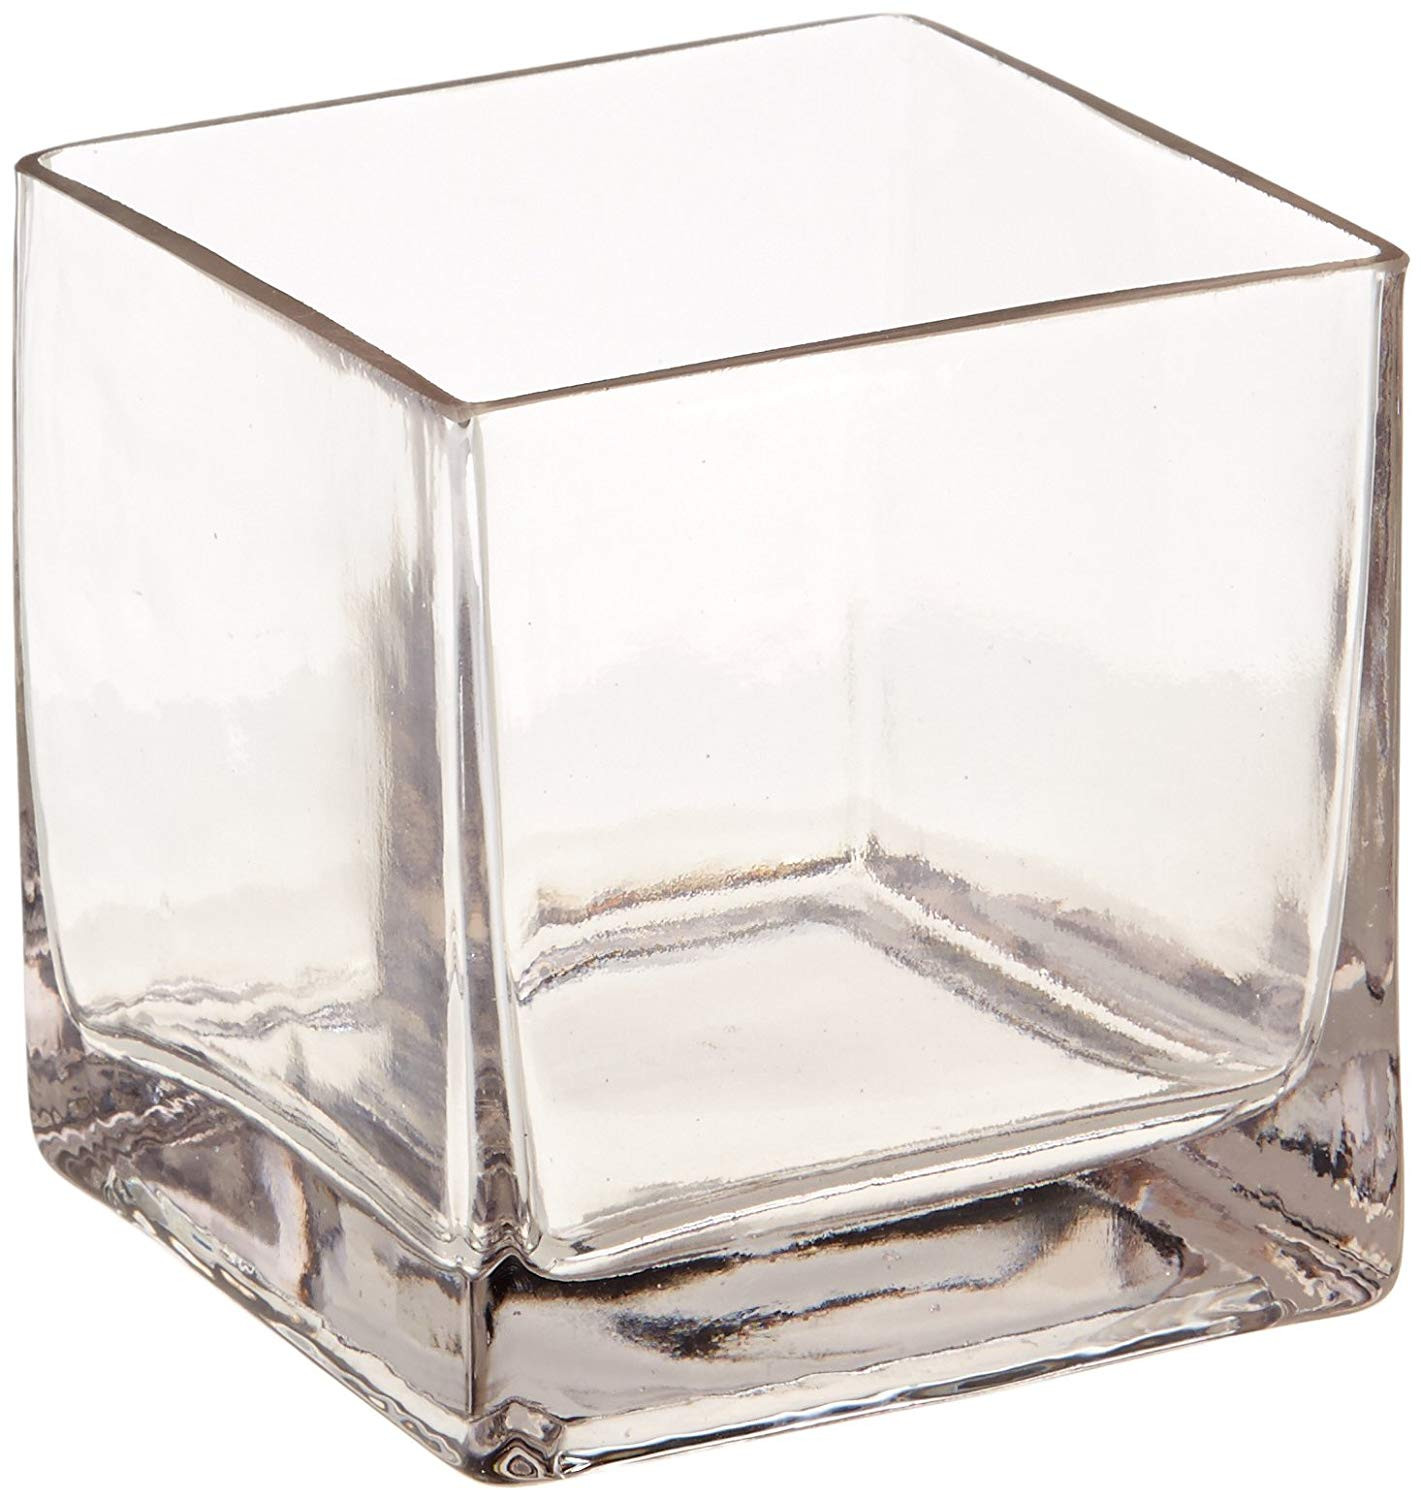 cheap glass cylinder vases wholesale of amazon com 12piece 4 square crystal clear glass vase home kitchen throughout 71 jezfmvnl sl1500